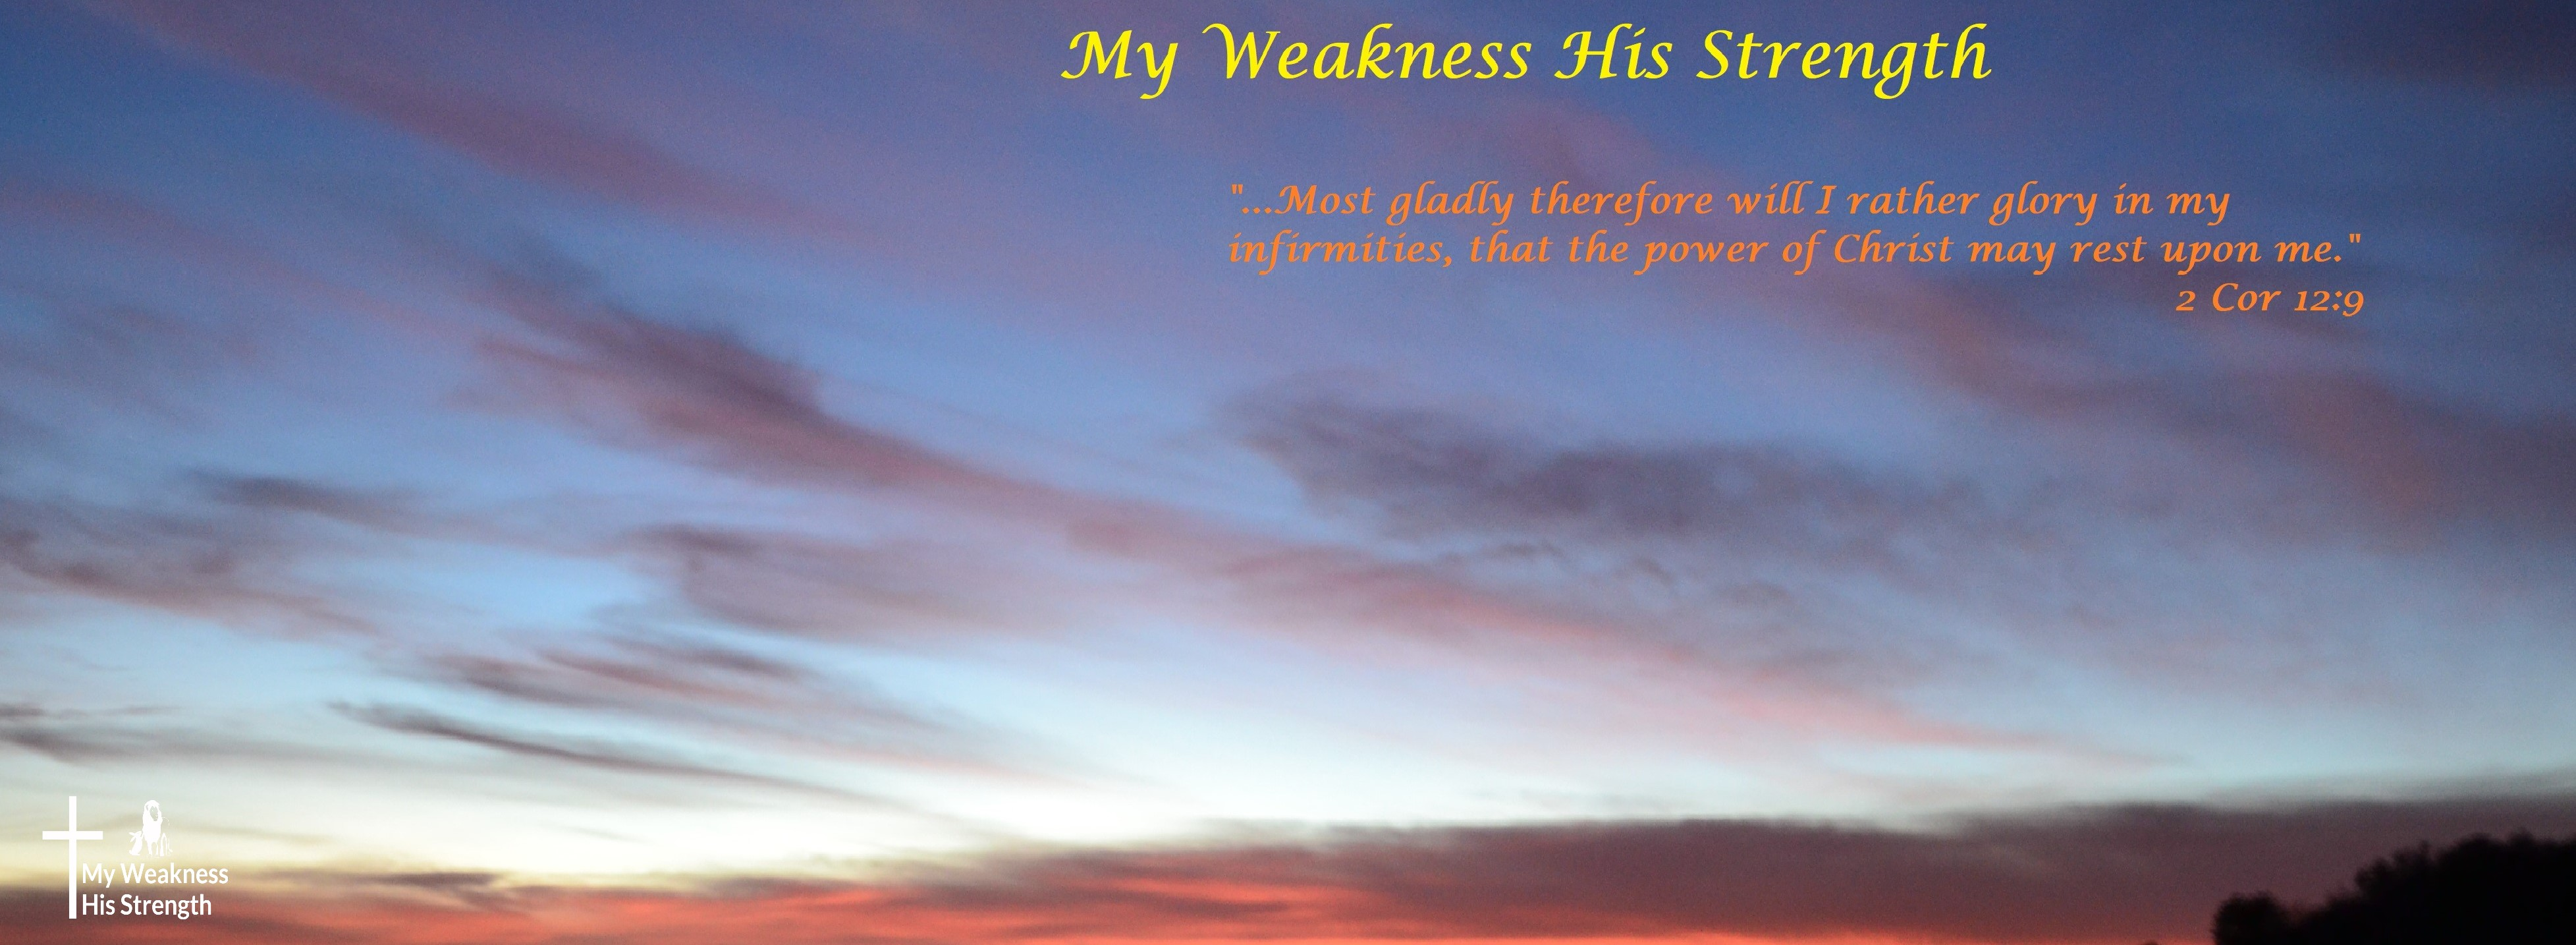 My Weakness His Strength